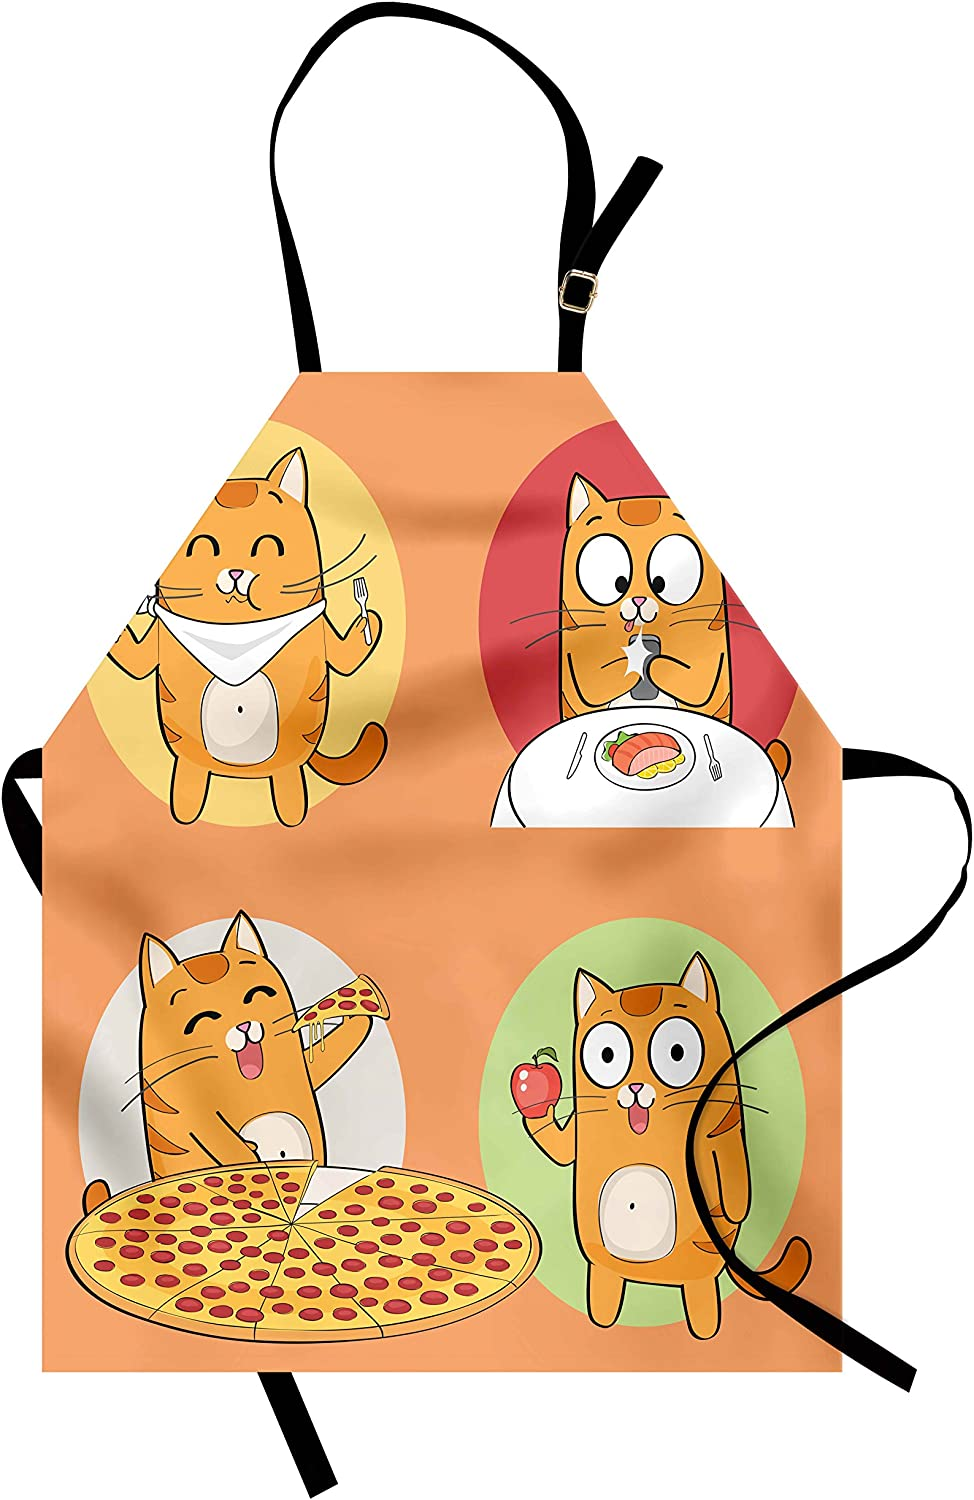 Lunarable Cat Apron, Characters Food Fork Breakfast Pizza Apple Cartoon Design, Unisex Kitchen Bib with Adjustable Neck for Cooking Gardening, Adult Size, Pistachio Green